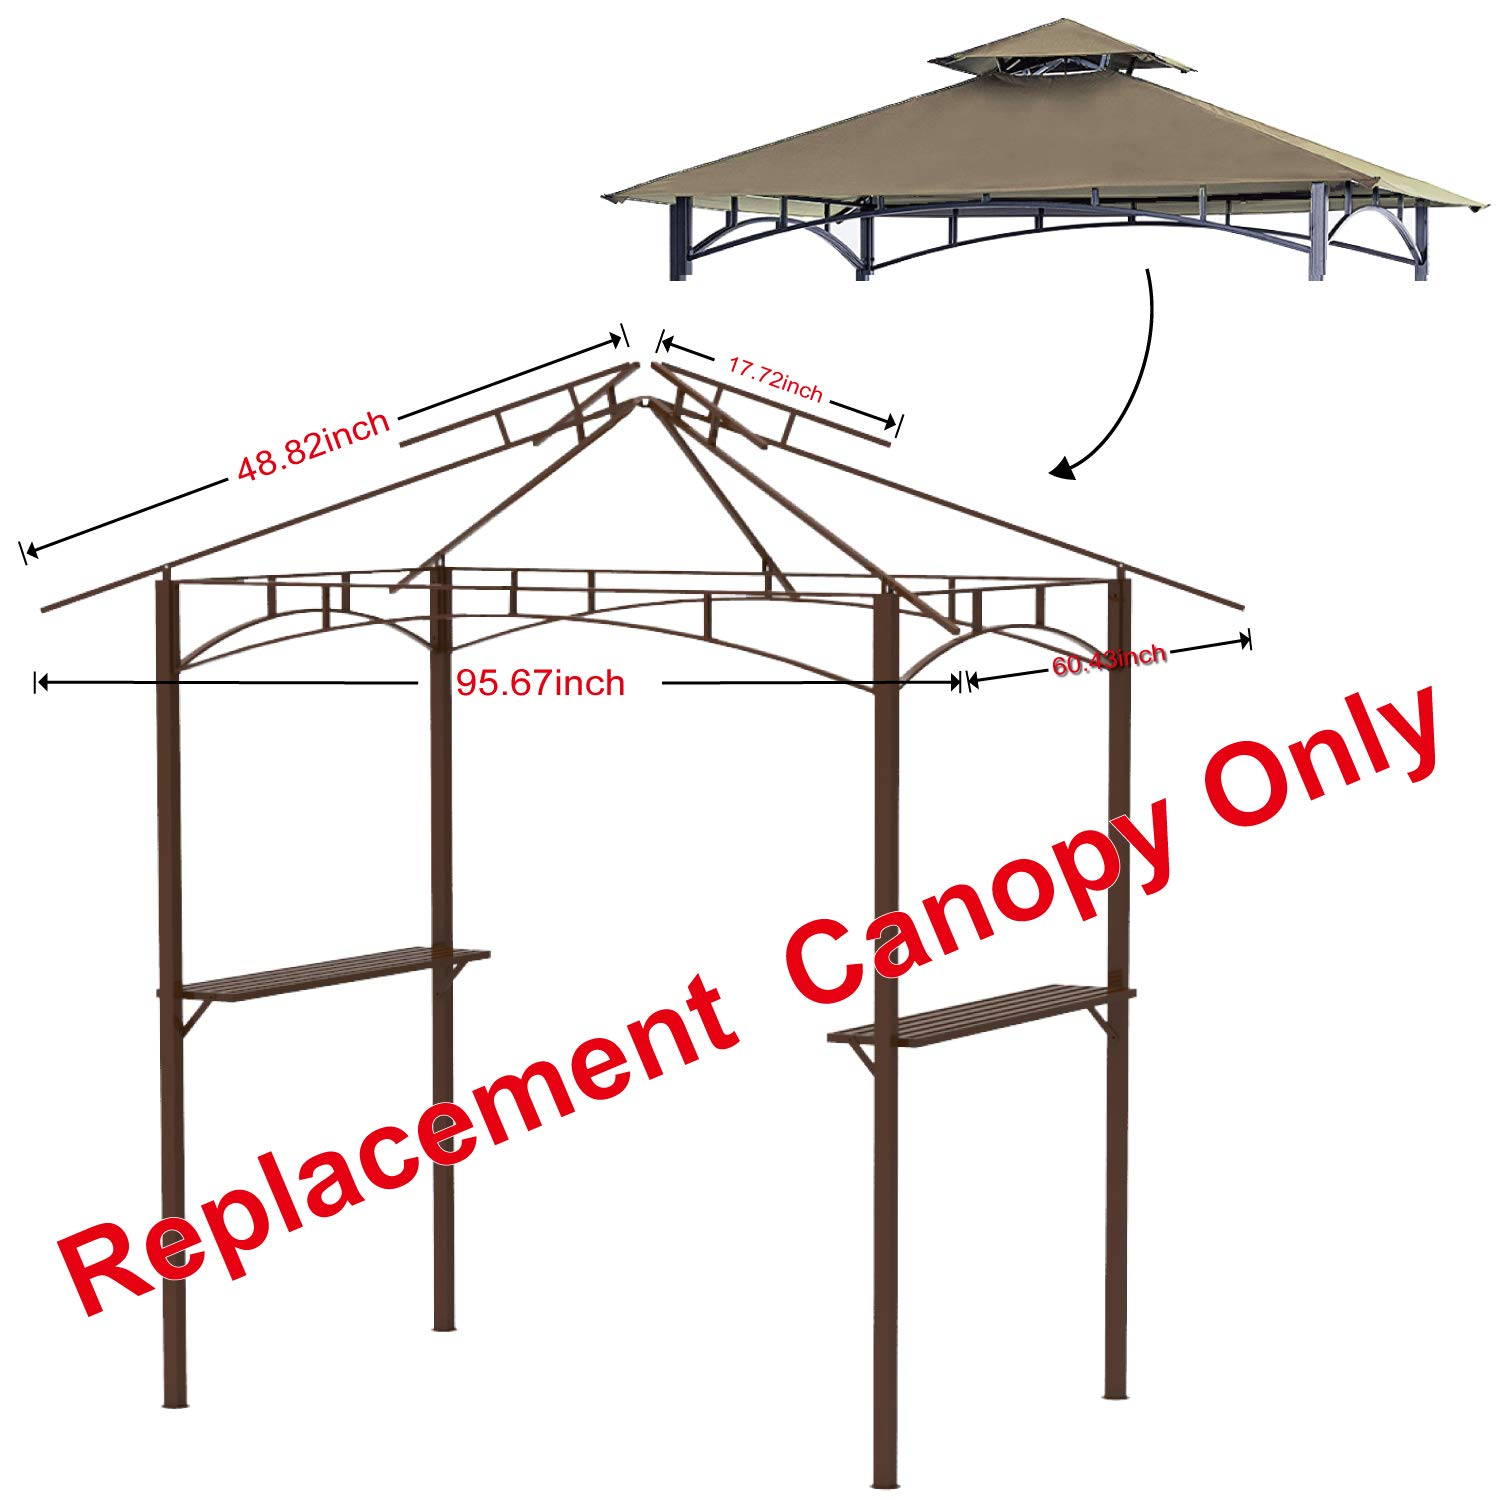 ABCCANOPY Grill Shelter Replacement Canopy roof for Model L-GZ238PST-11 (Beige) by ABCCANOPY (Image #2)